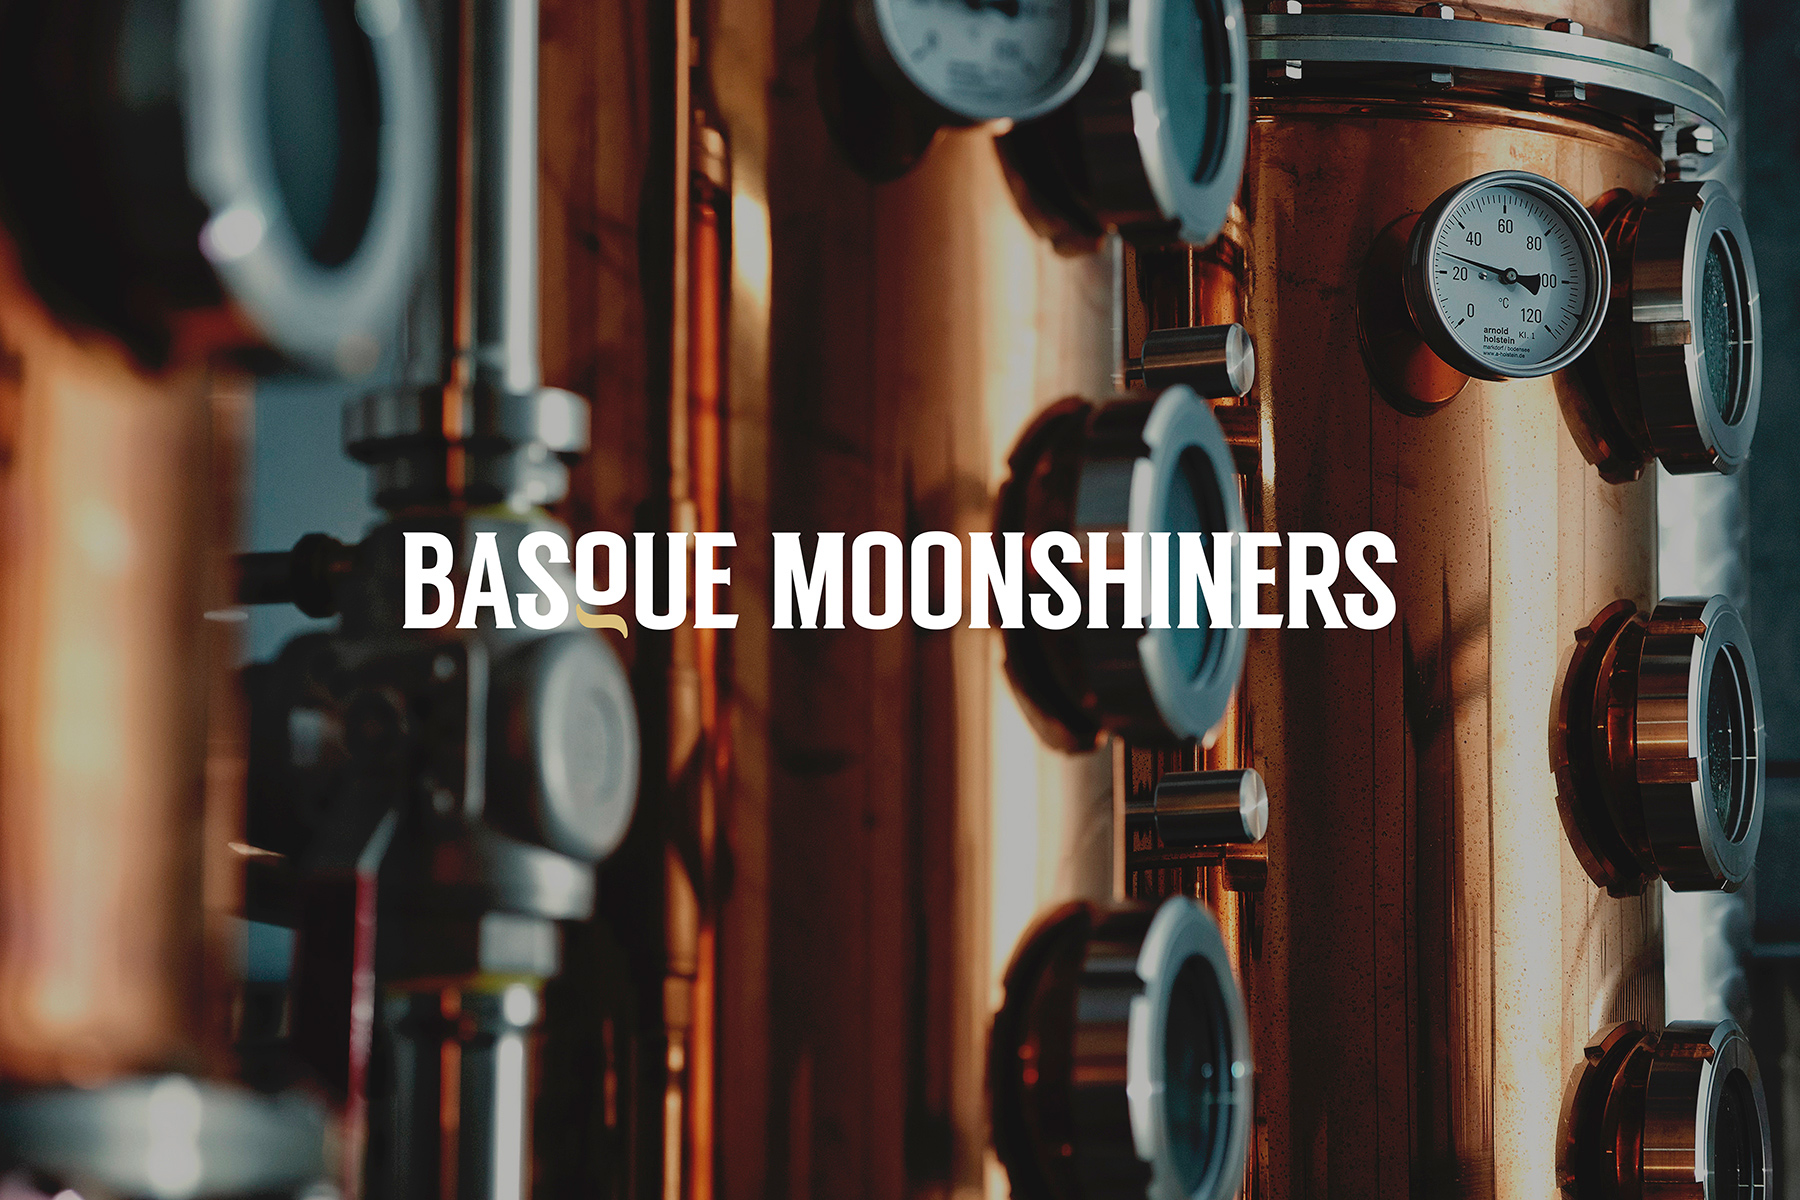 BASQUE MOONSHINERS